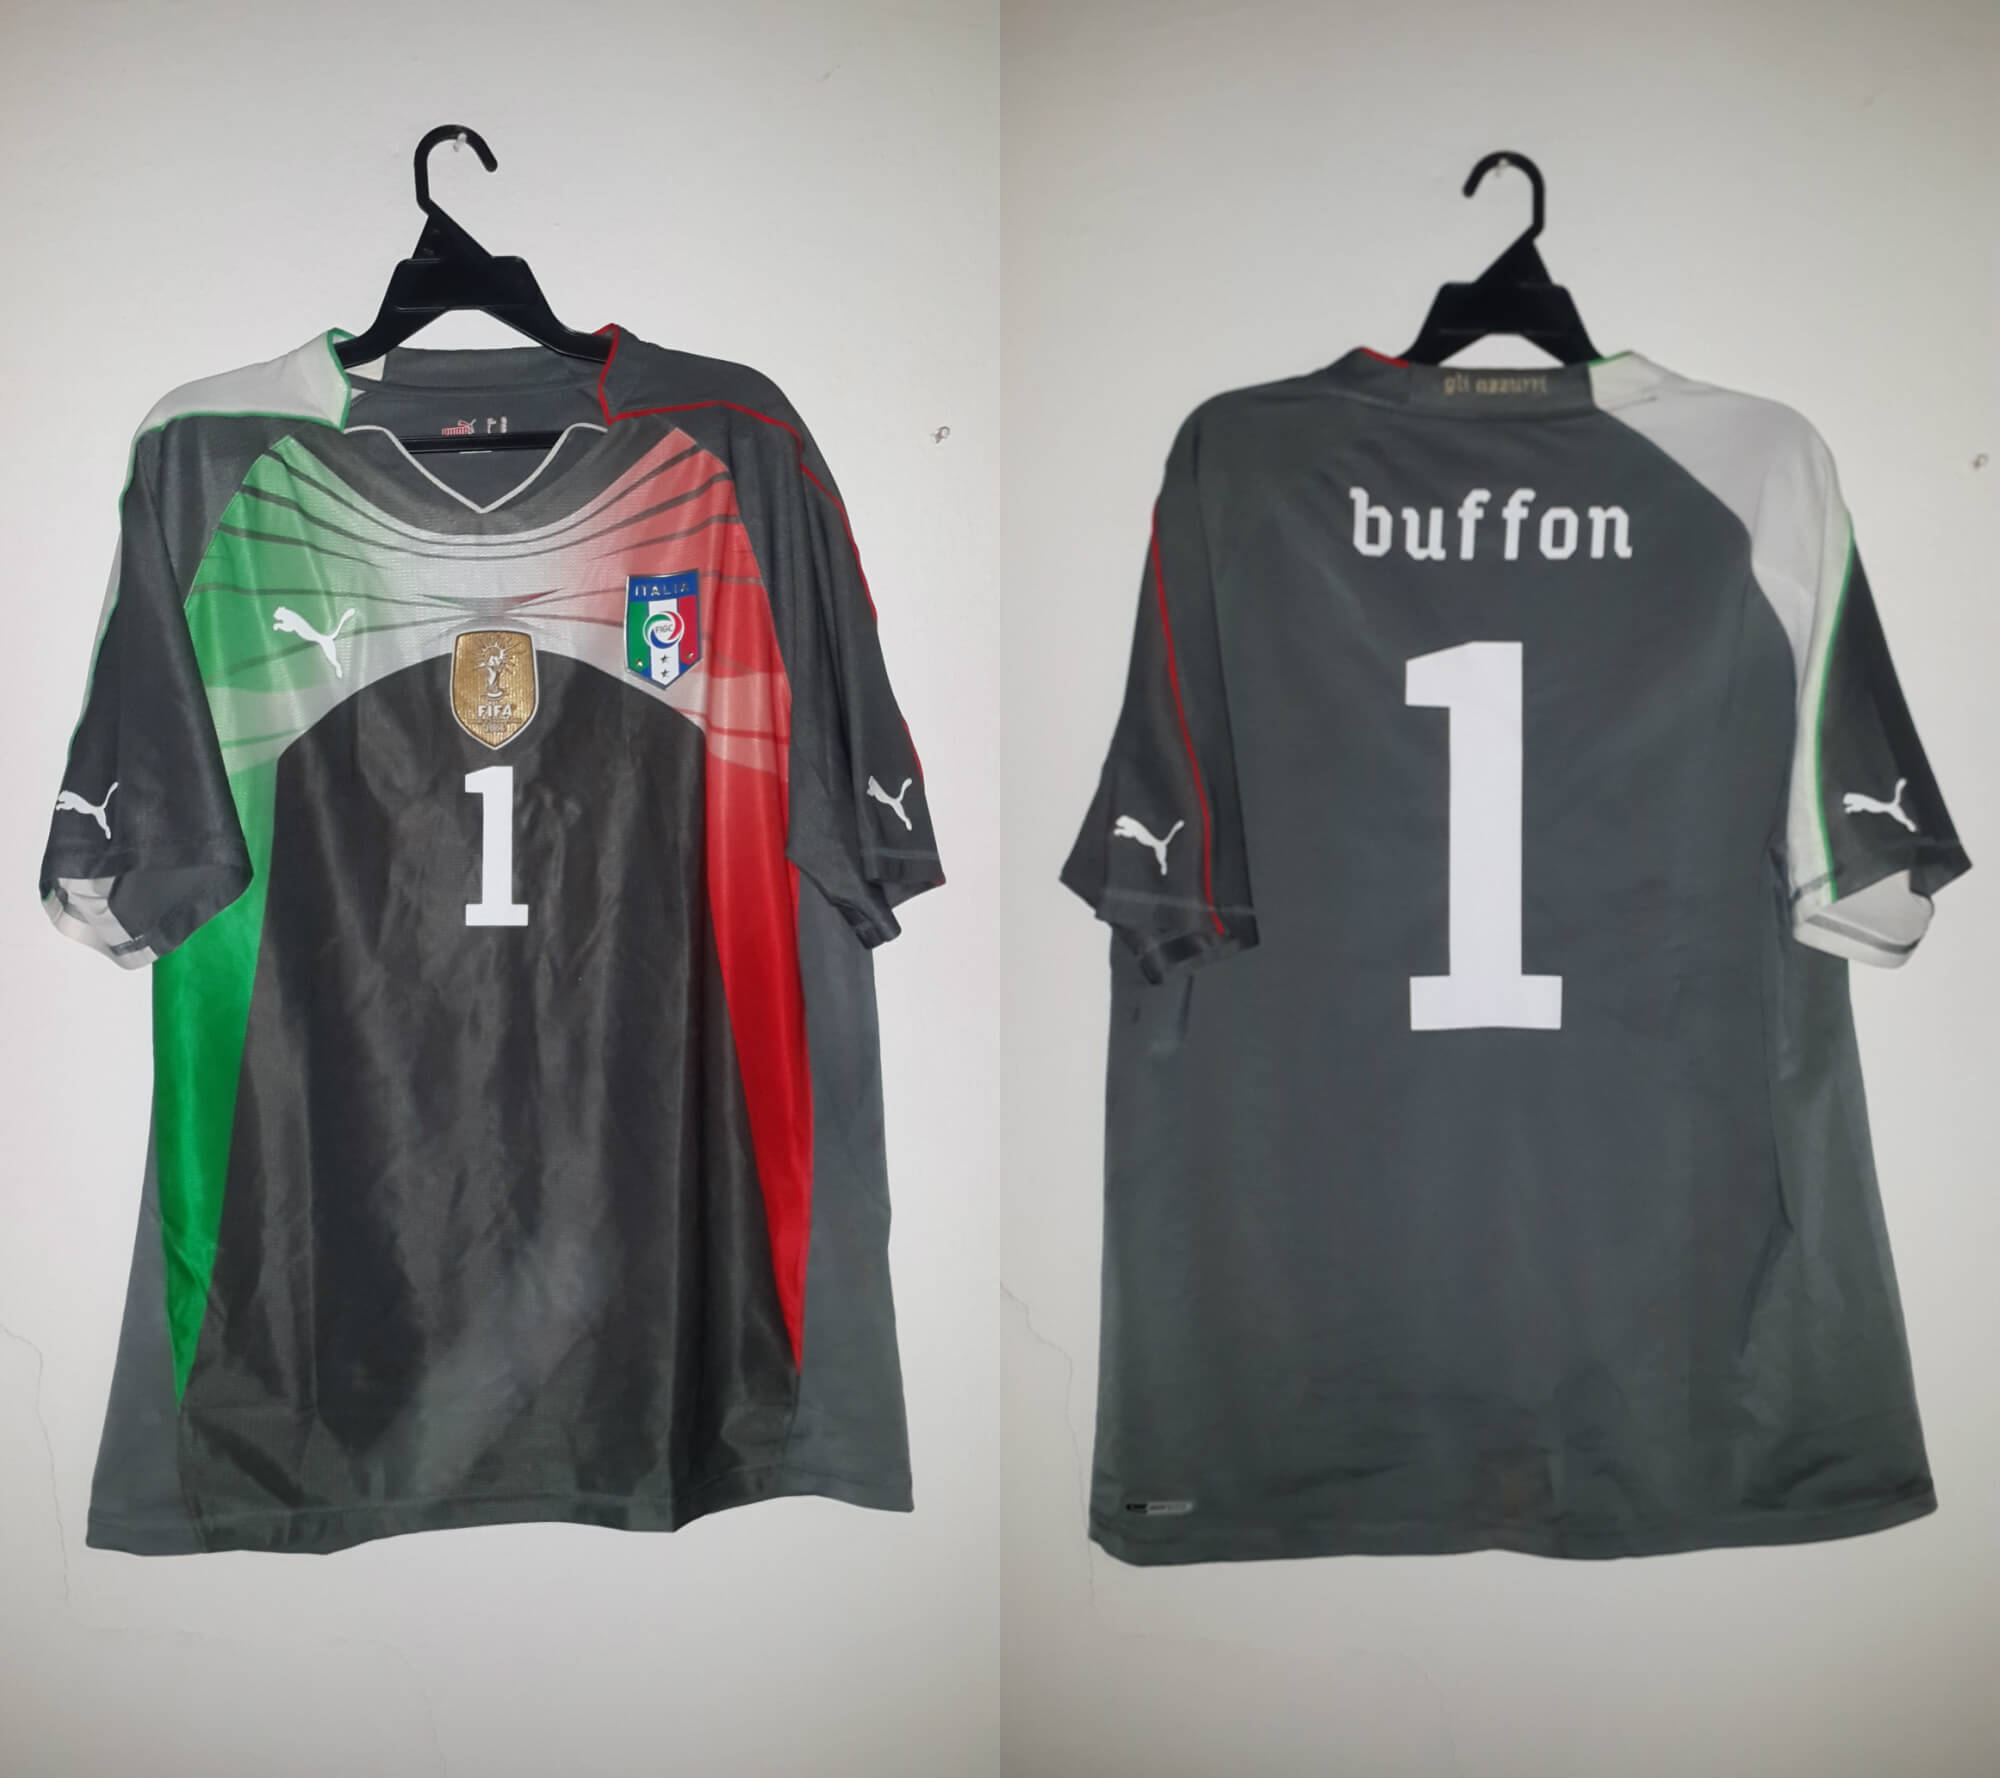 42b5dafcd1dc0 Real mexico jersey jpg 2000x1778 Real mexico jersey